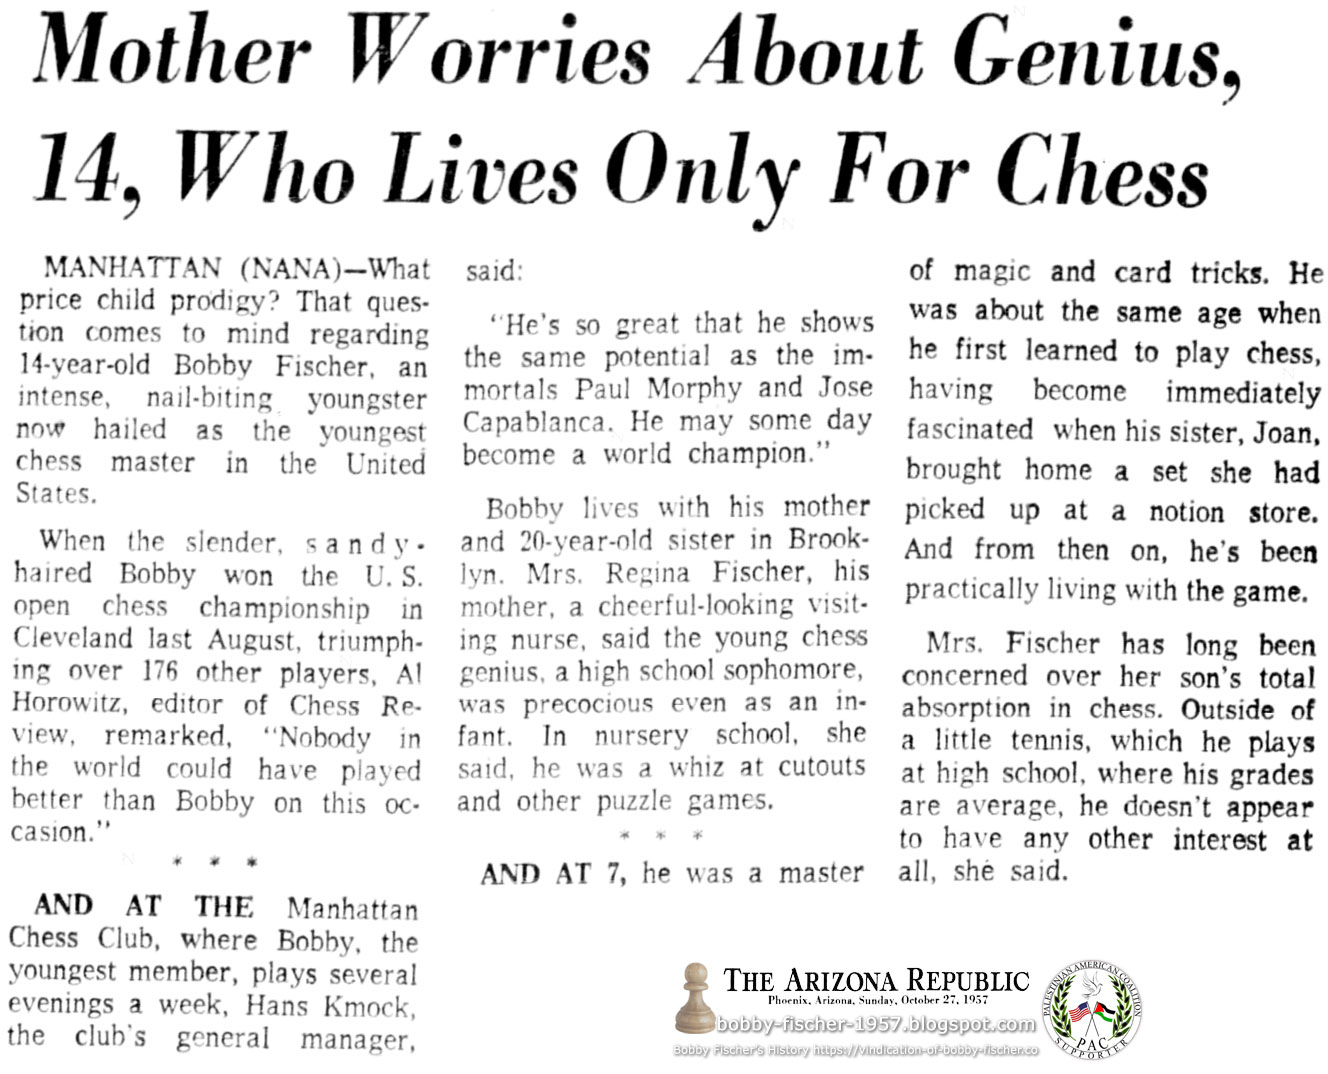 Mother Worries About Genius, 14, Who Lives Only For Chess